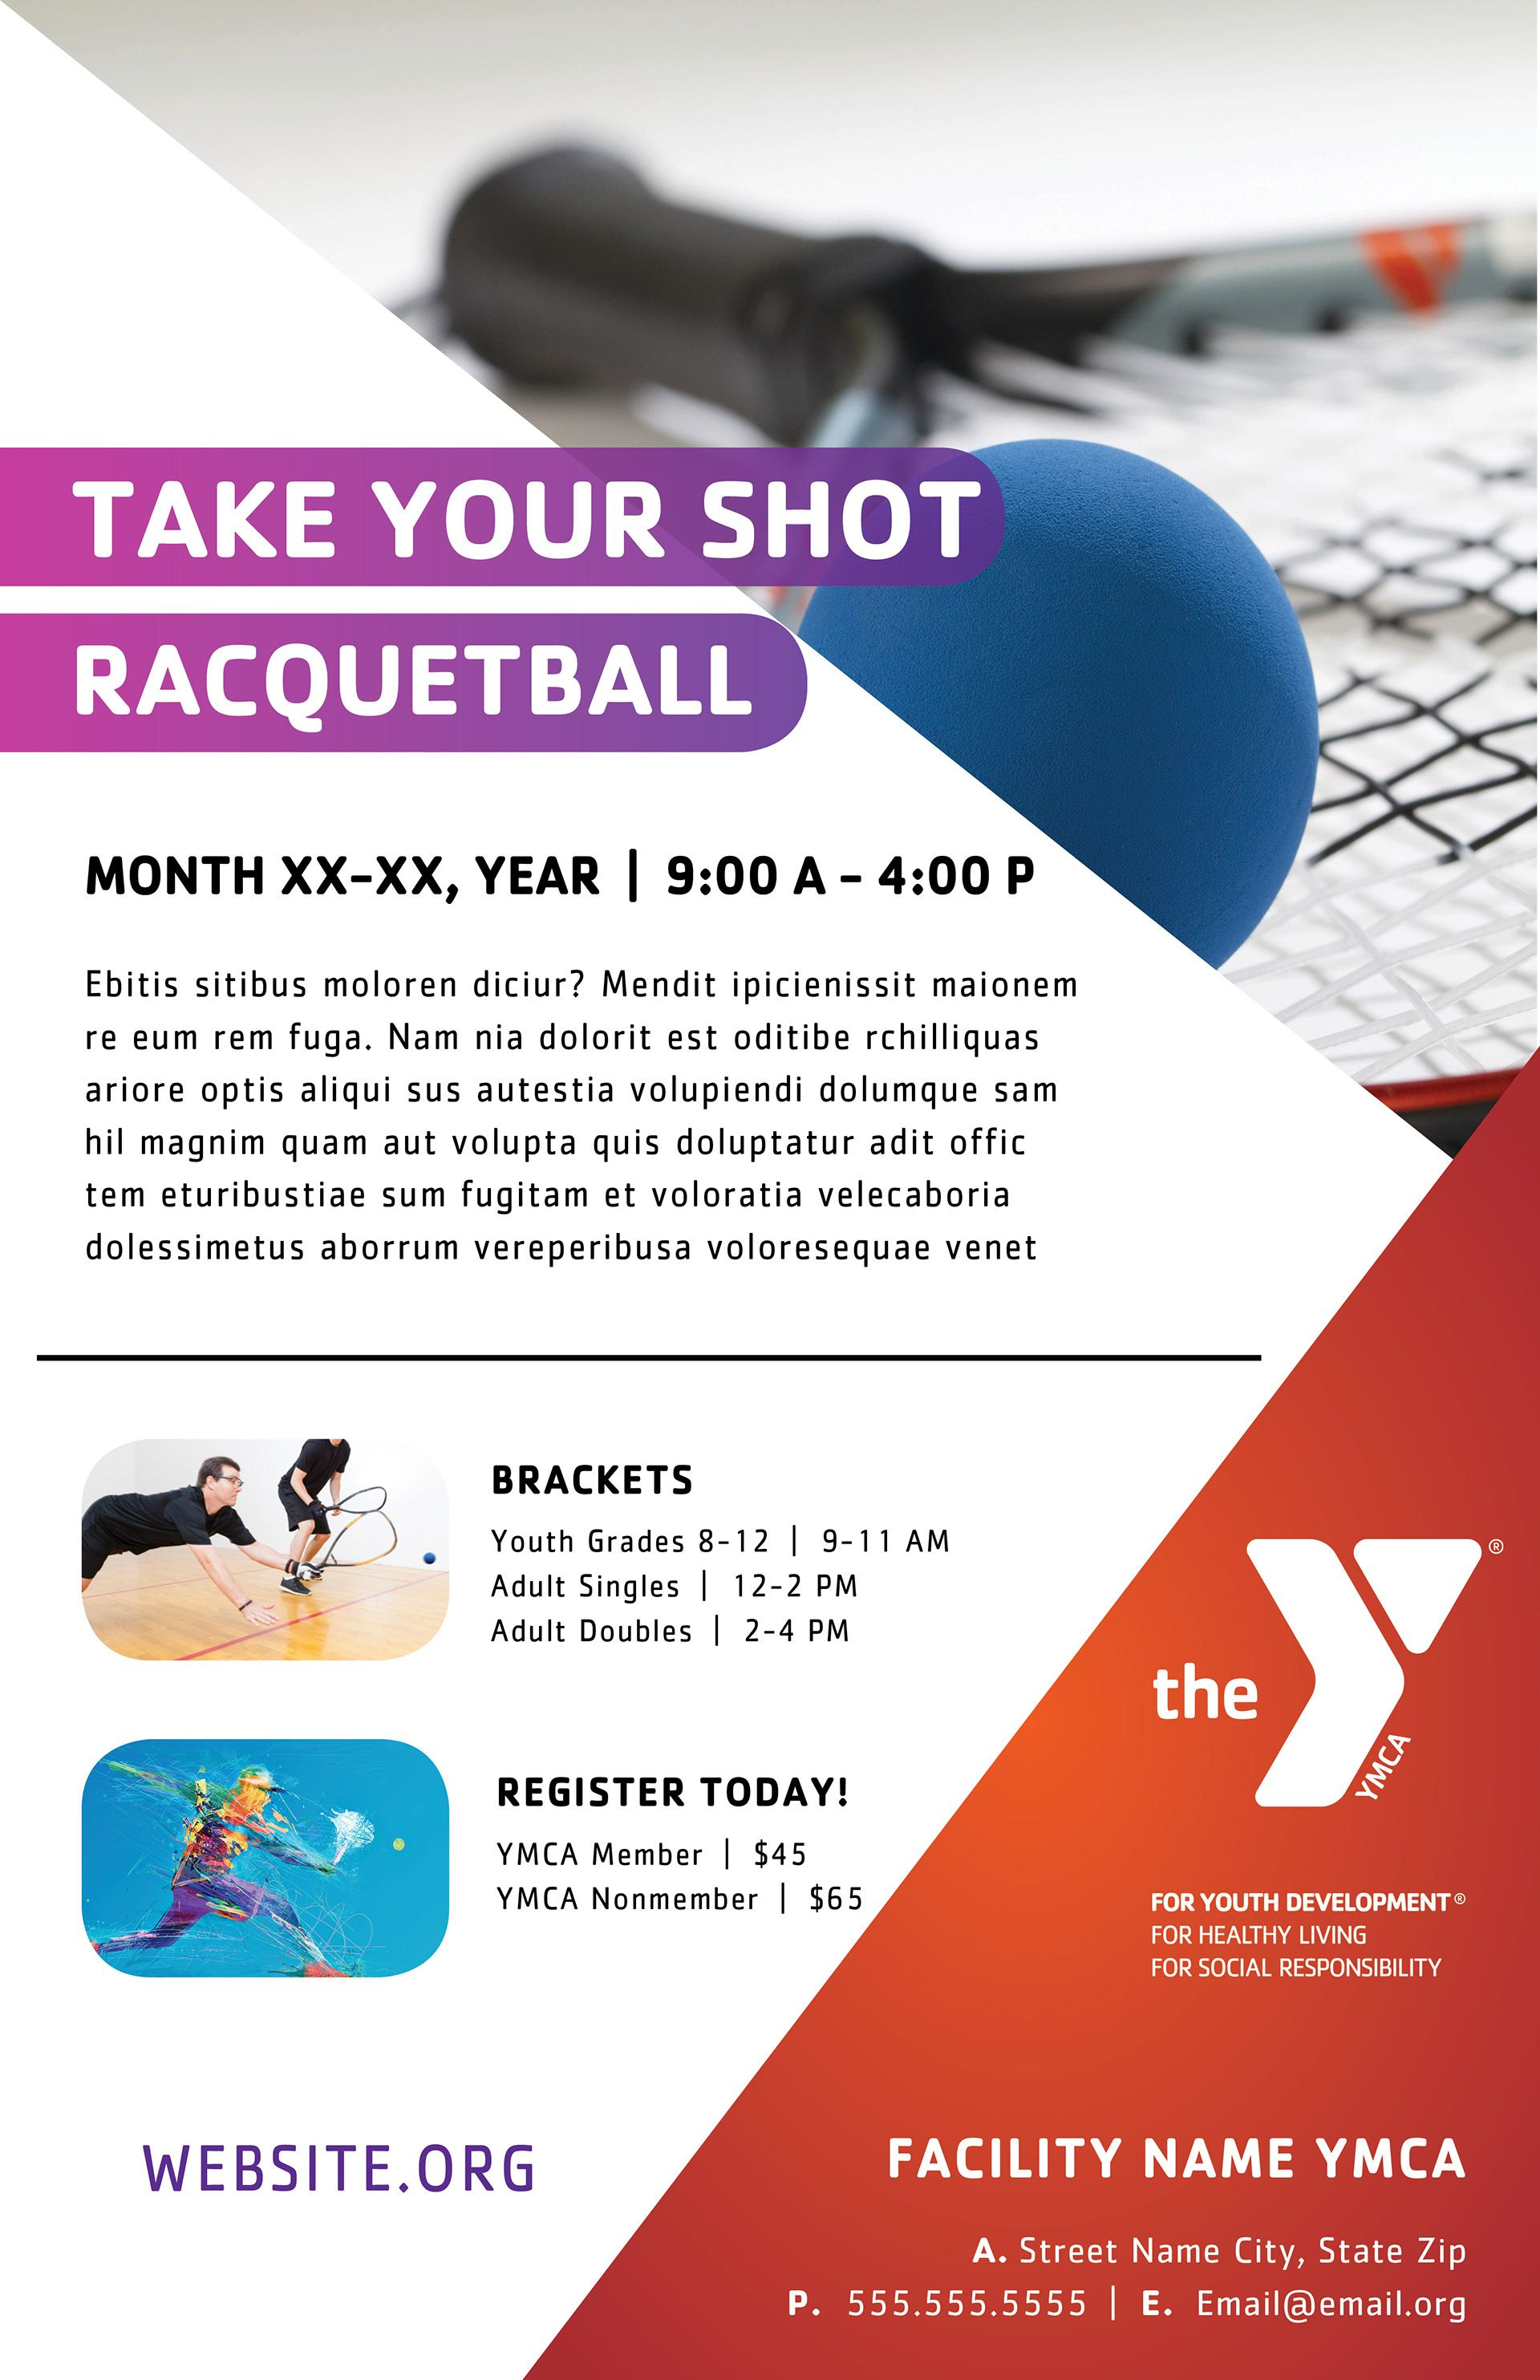 Layout Concept Ymcas Offer A Wide Range Of Programs Basketball Youthdevelopment Youthsports Ymca Healthyliving Fitnessfun Ymca Portfolio Fun Workouts